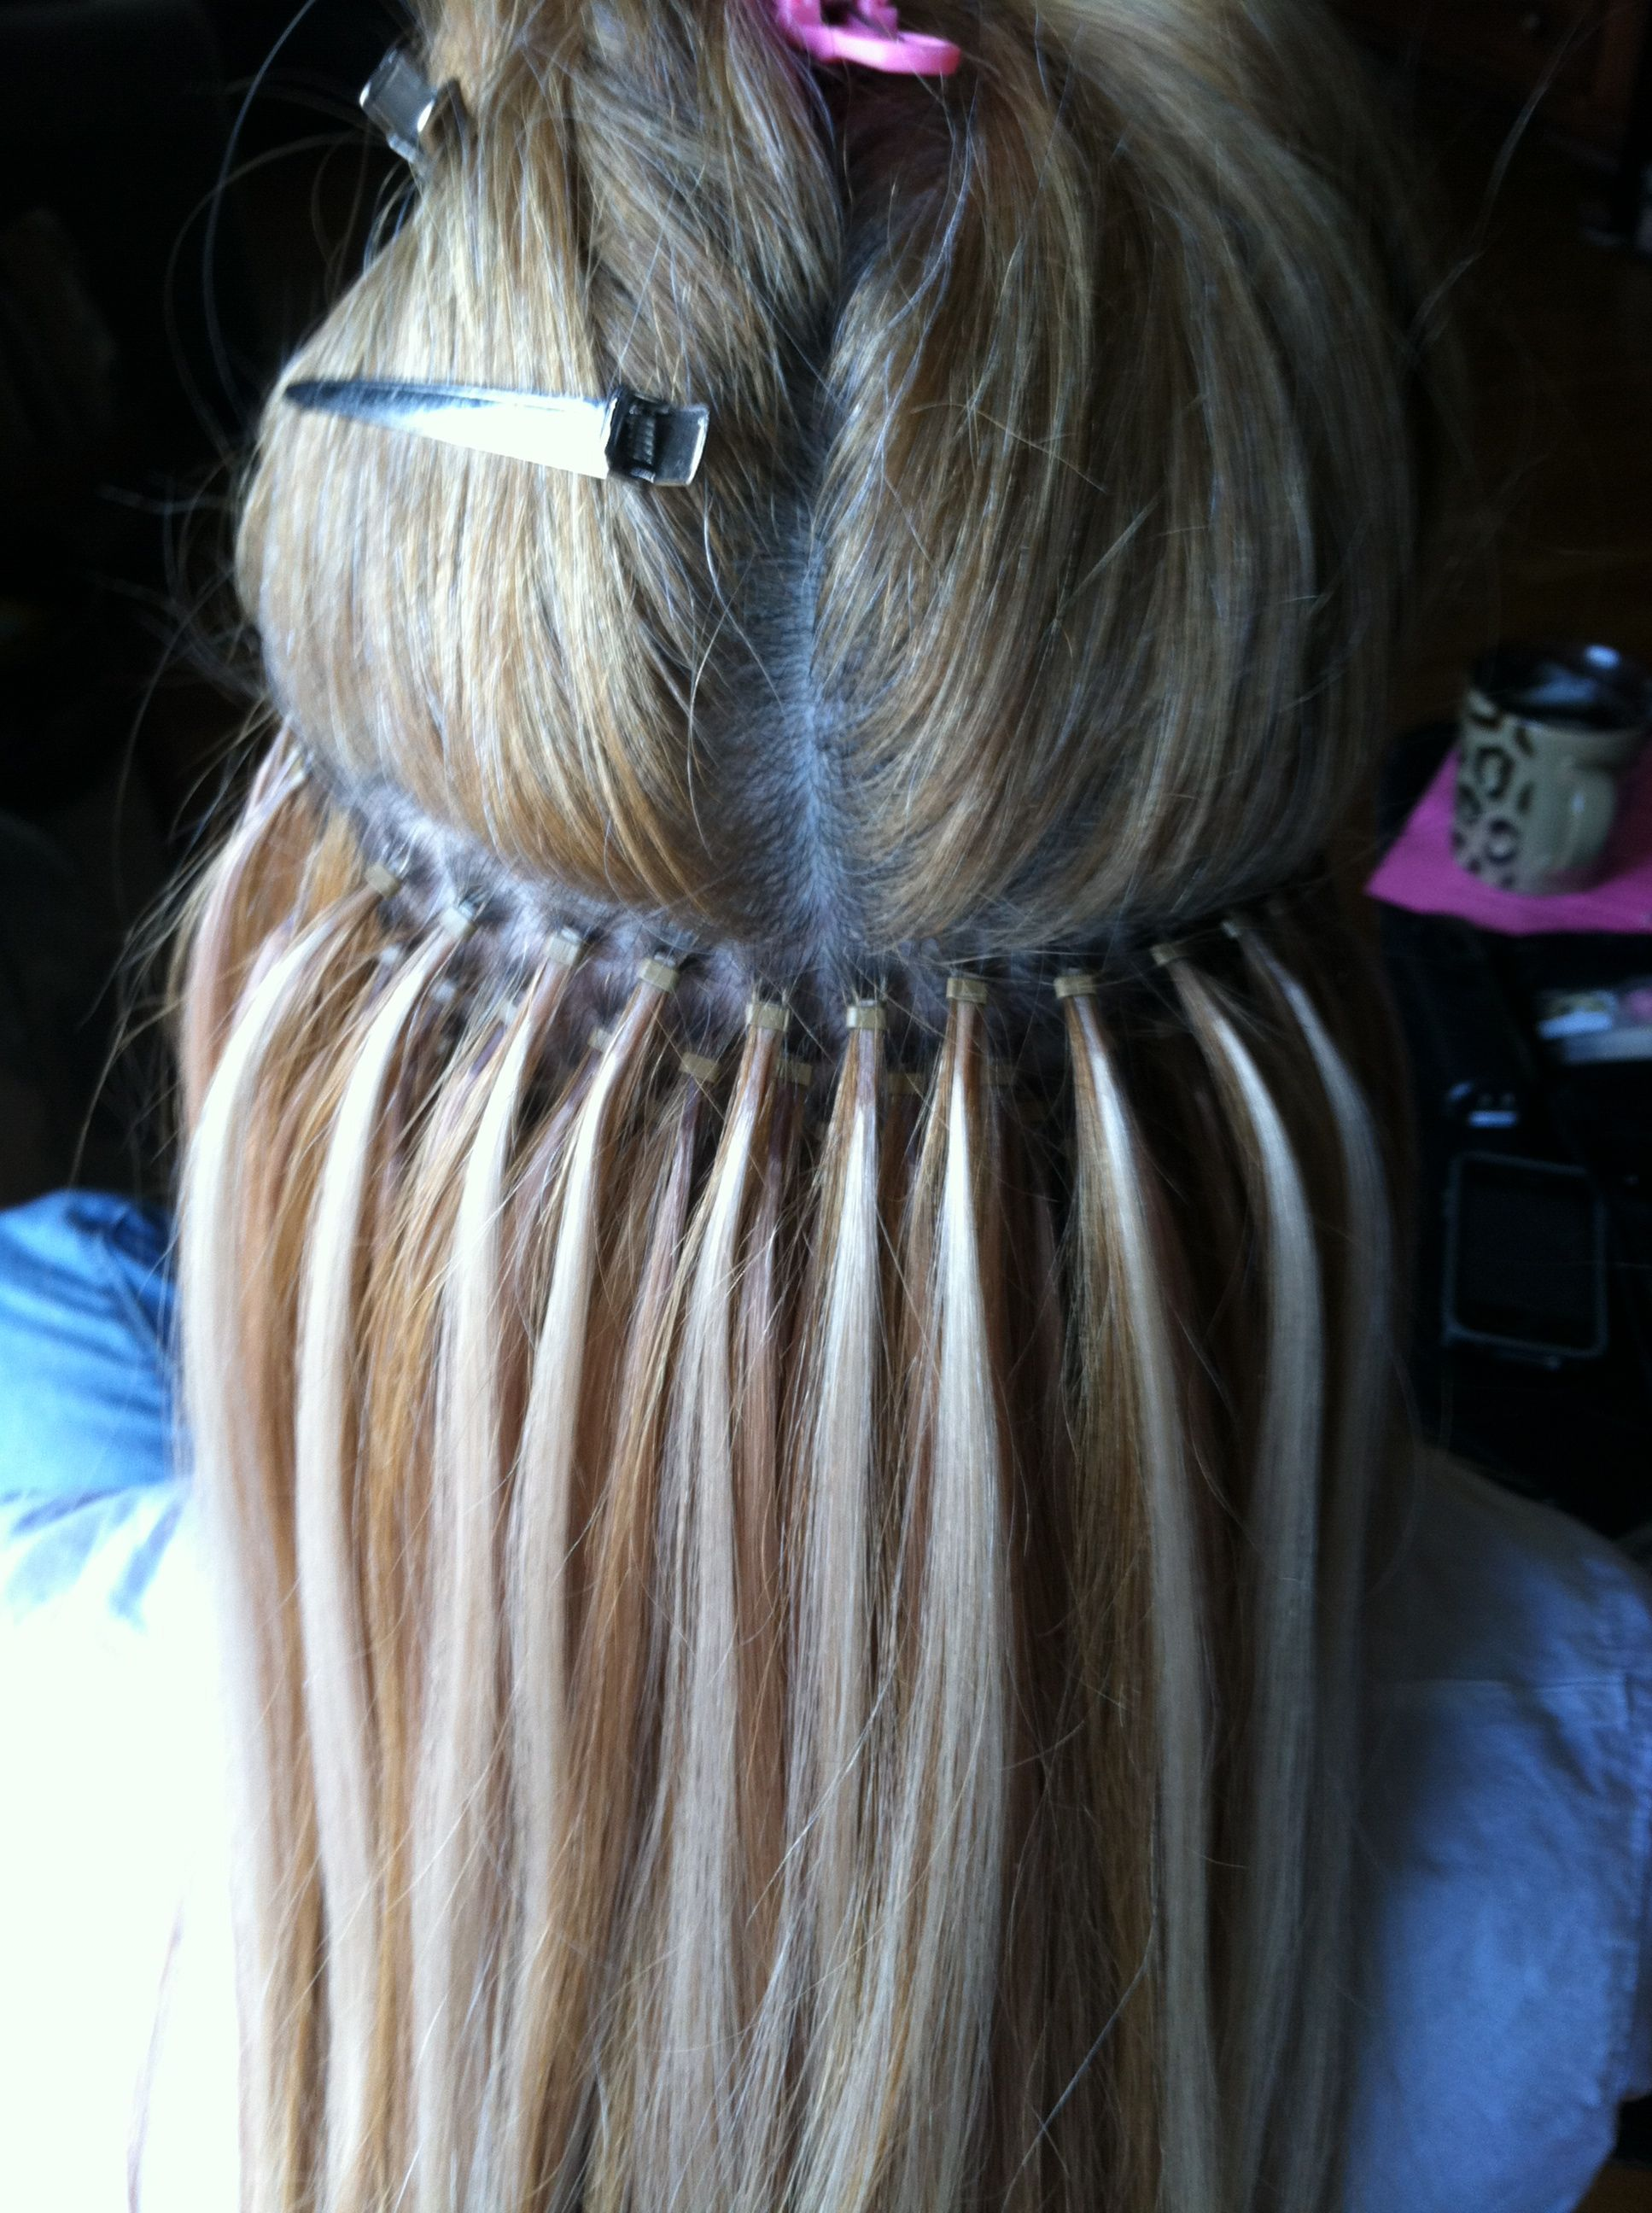 Perfect micro bead hair extension placement long island hair perfect micro bead hair extension placement long island hair extension artist seems like it would cause alot of damage solutioingenieria Choice Image